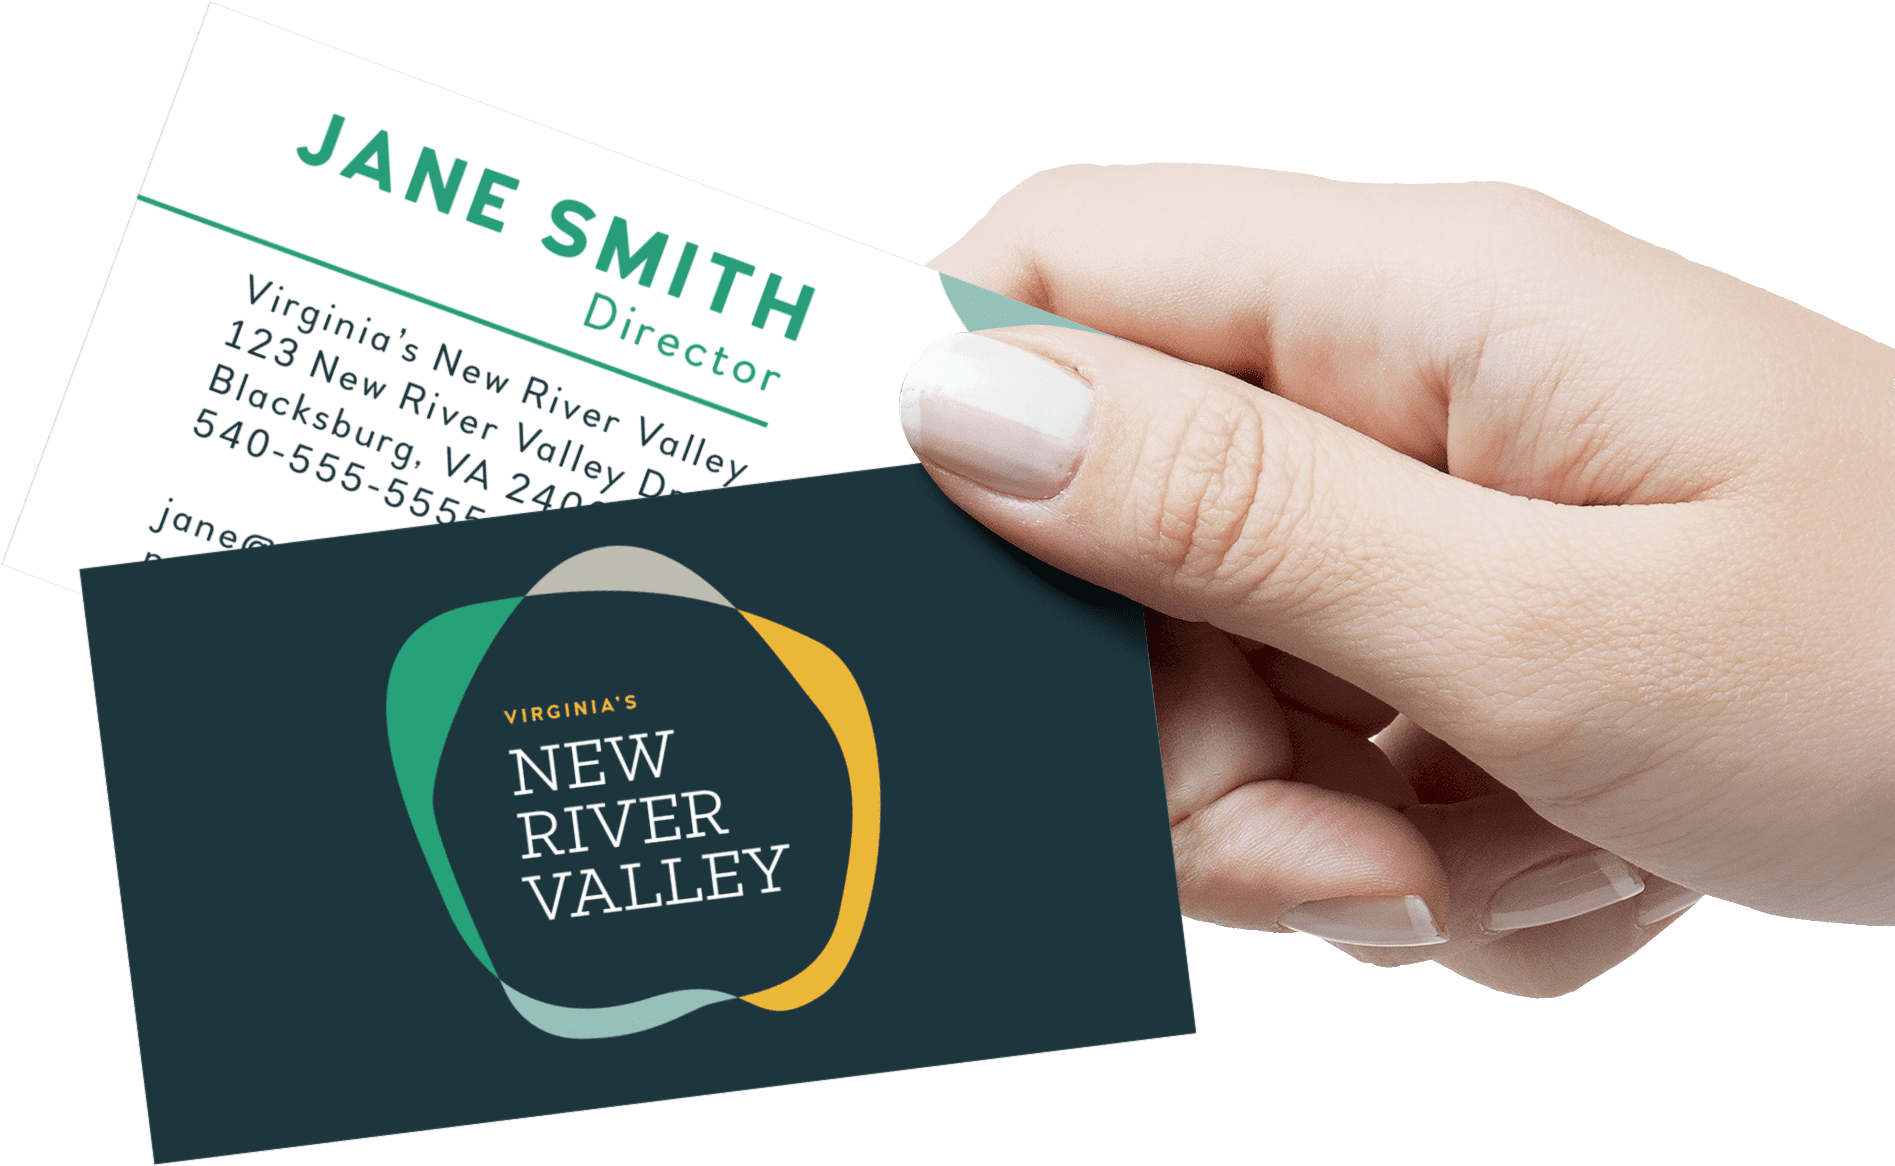 New River Valley Business Card Mock up